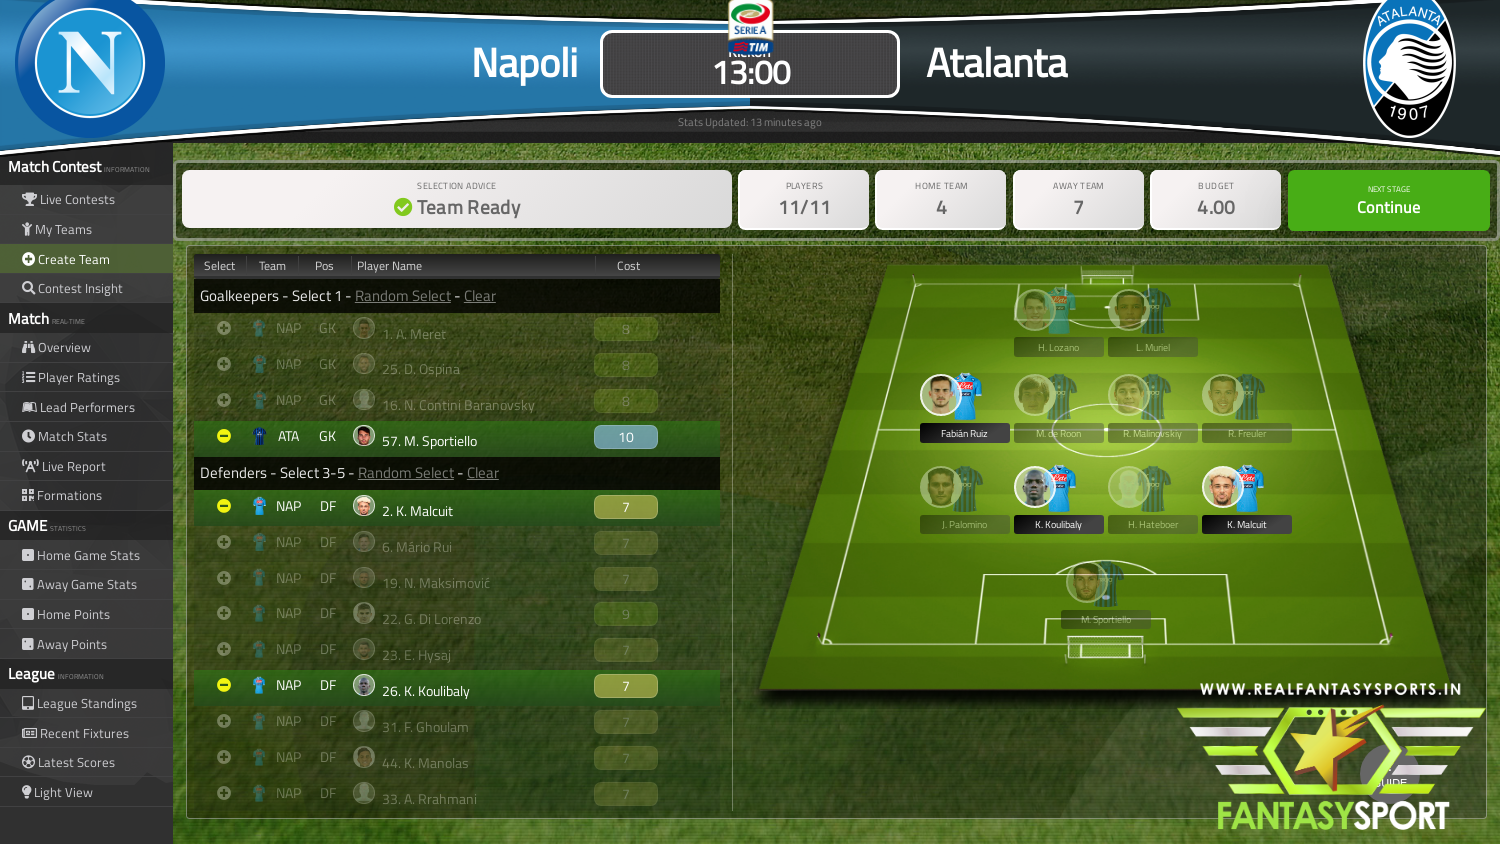 Fantasy Football Napoli Vs Atalanta